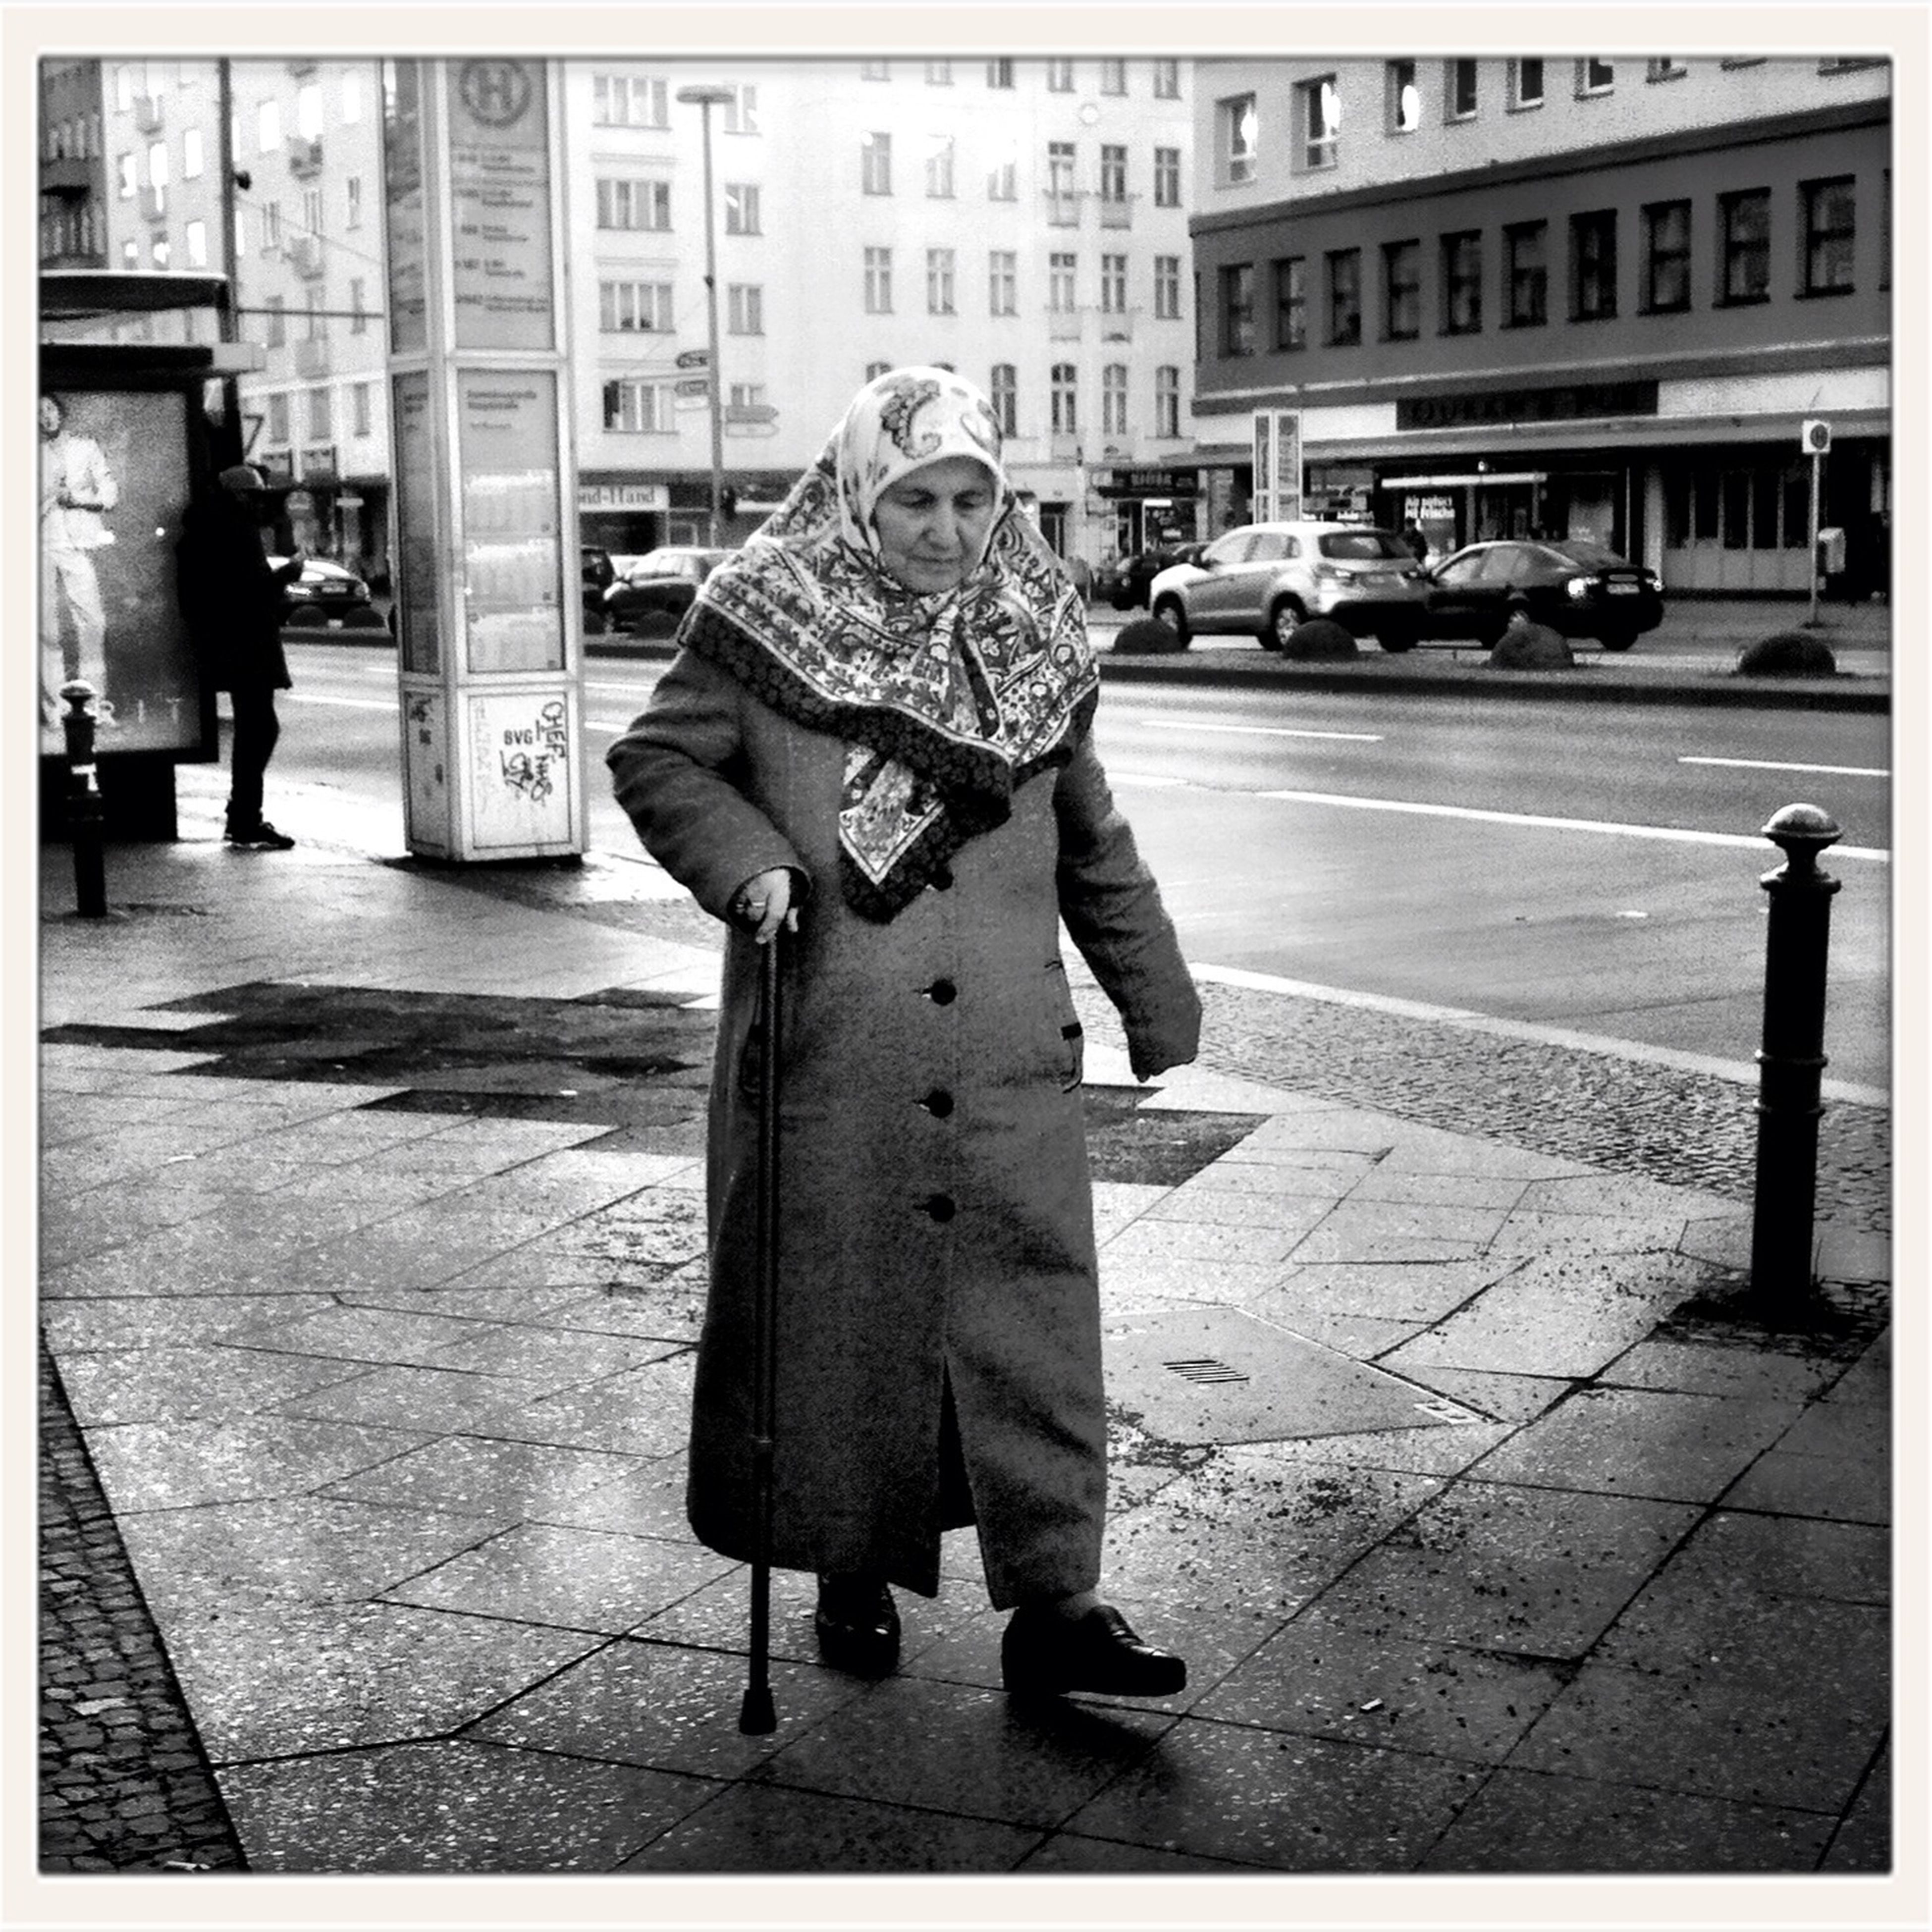 Streetphotography Divestreetphotography